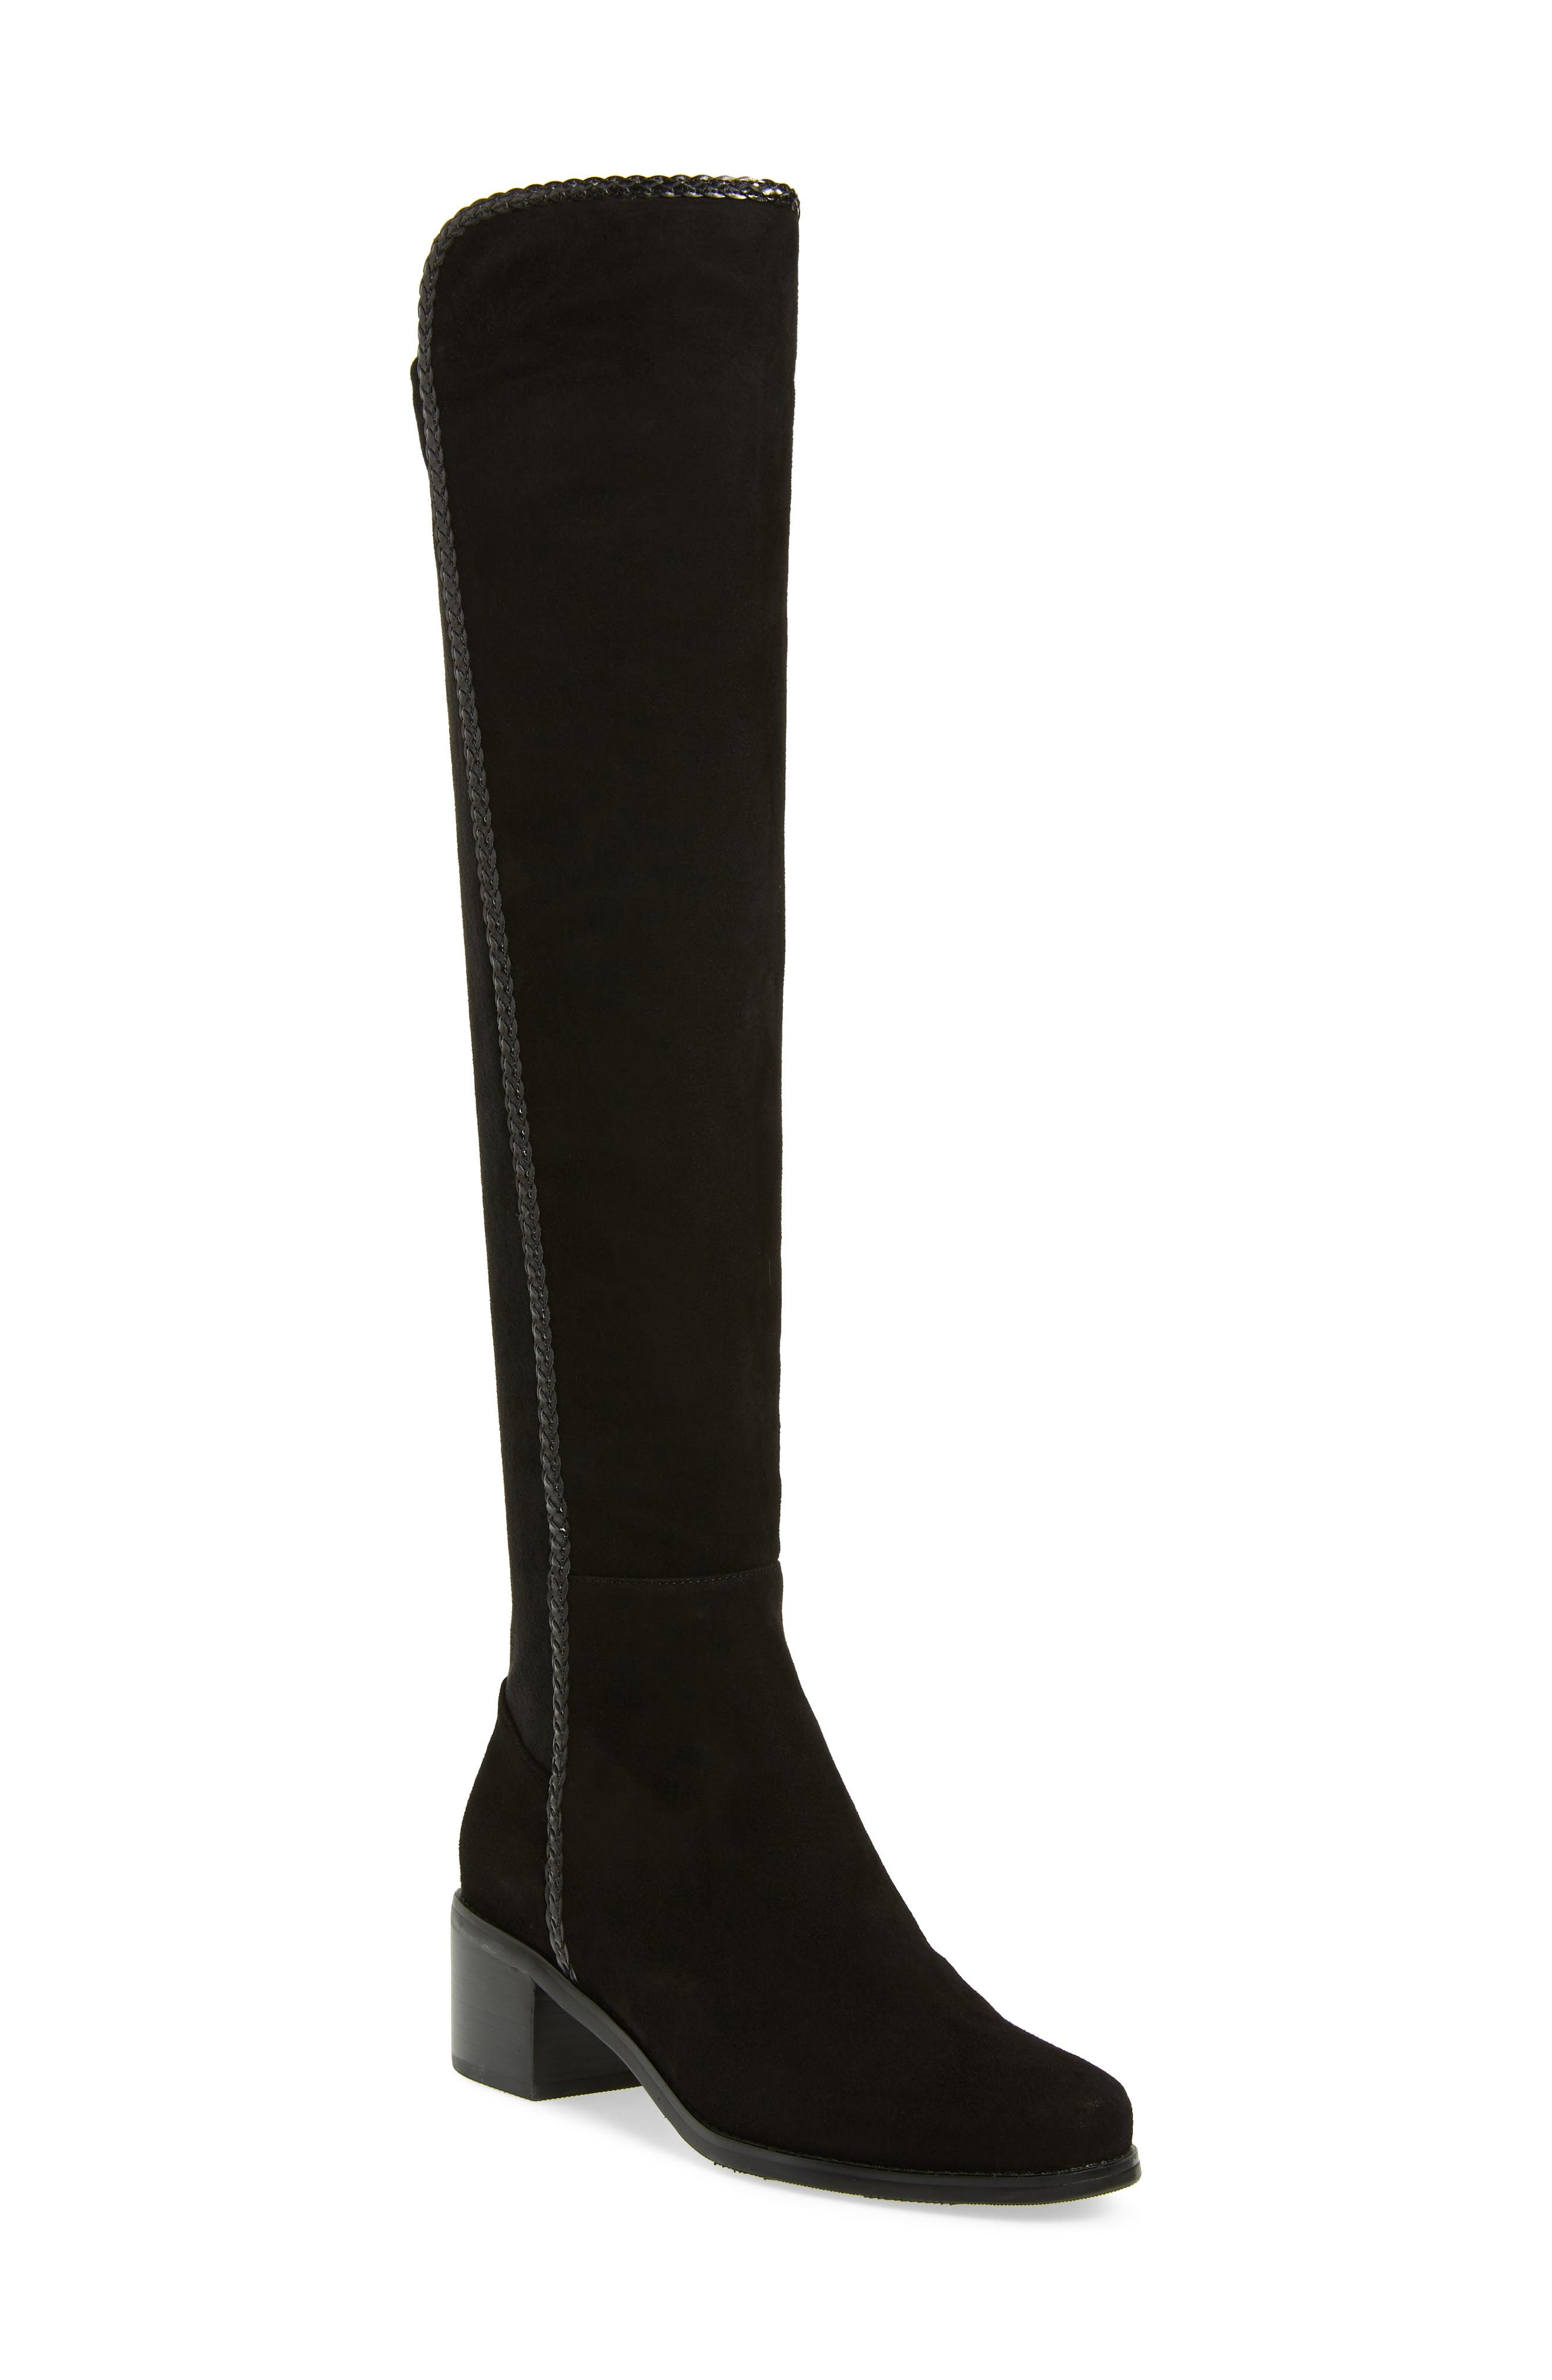 Florence Waterproof Over the Knee Boot,                             Main thumbnail 1, color,                             BLACK SUEDE